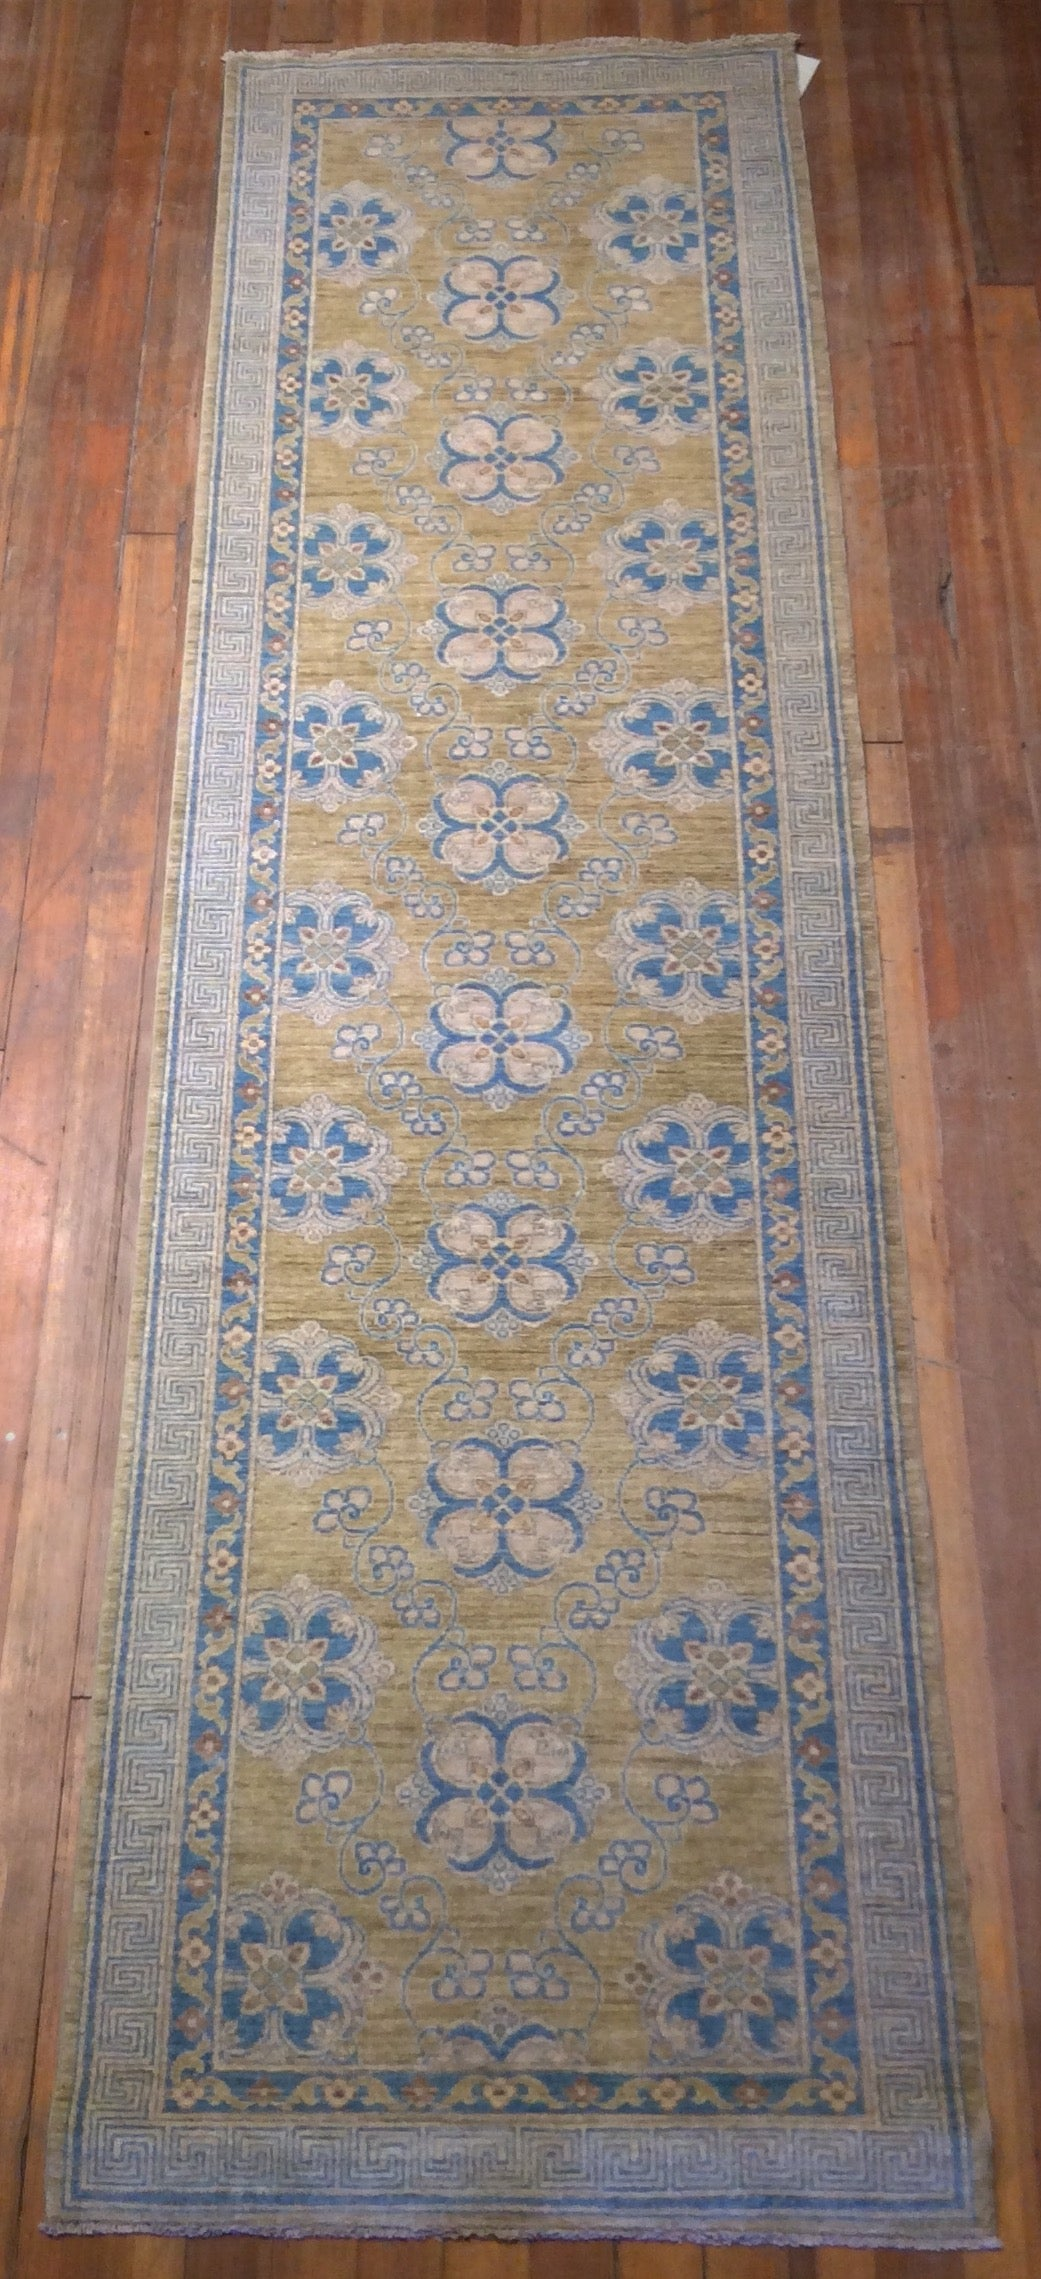 Fine Arts and crafts Rug.  10'.5